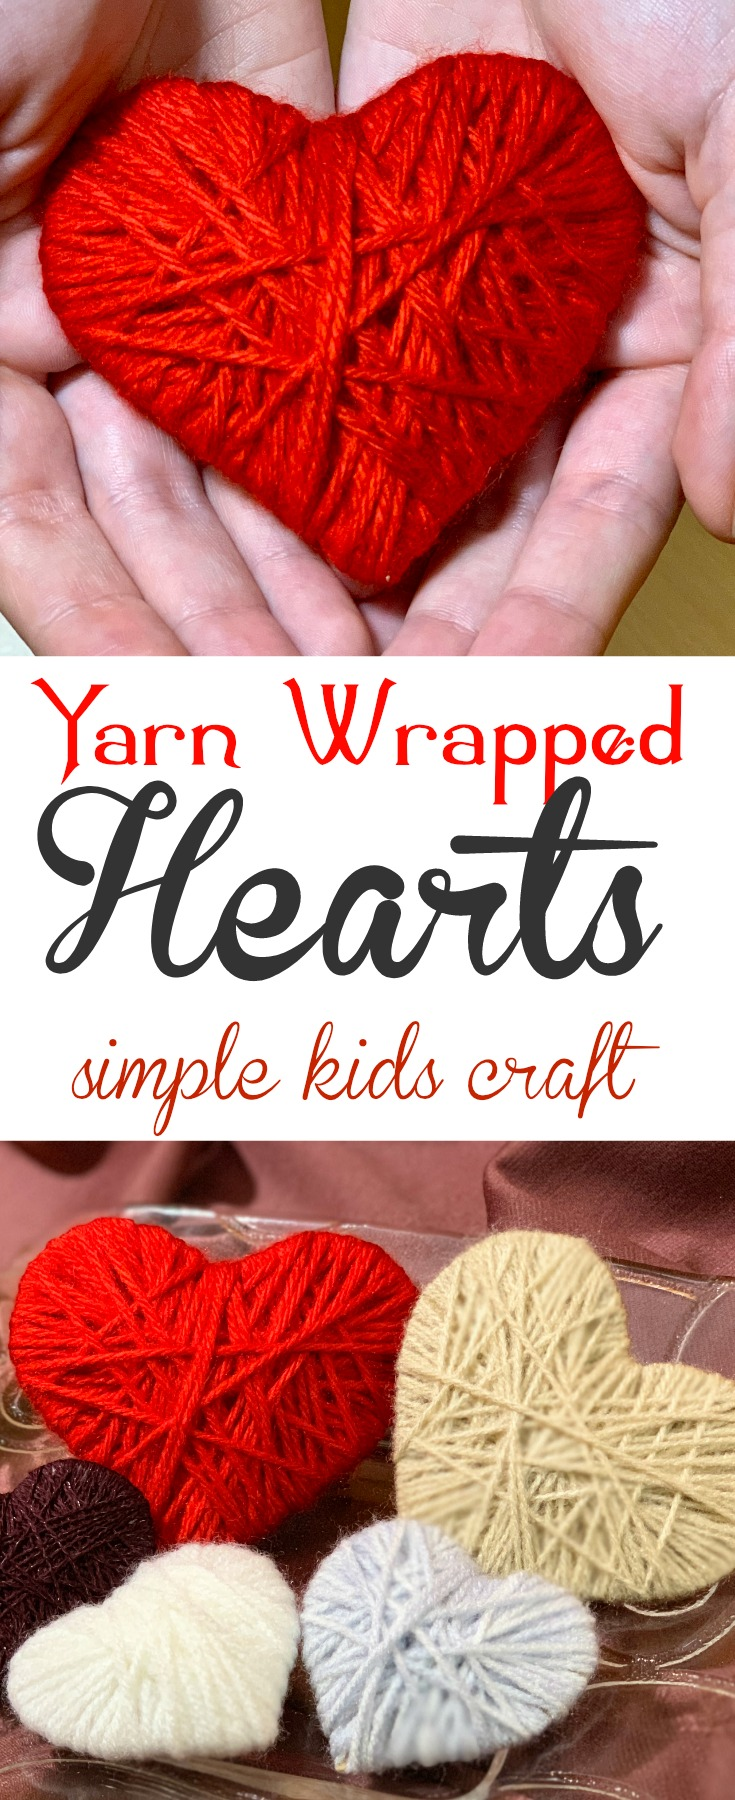 Easy yarn wrapped hearts are the perfect craft decoration made with yarn - such a sweet gift for Valentine's Day, Mother's Day and even Christmas!  #yarn  #yarncraft #Kids #KidsCraft #ValentinesDay #MothersDay #